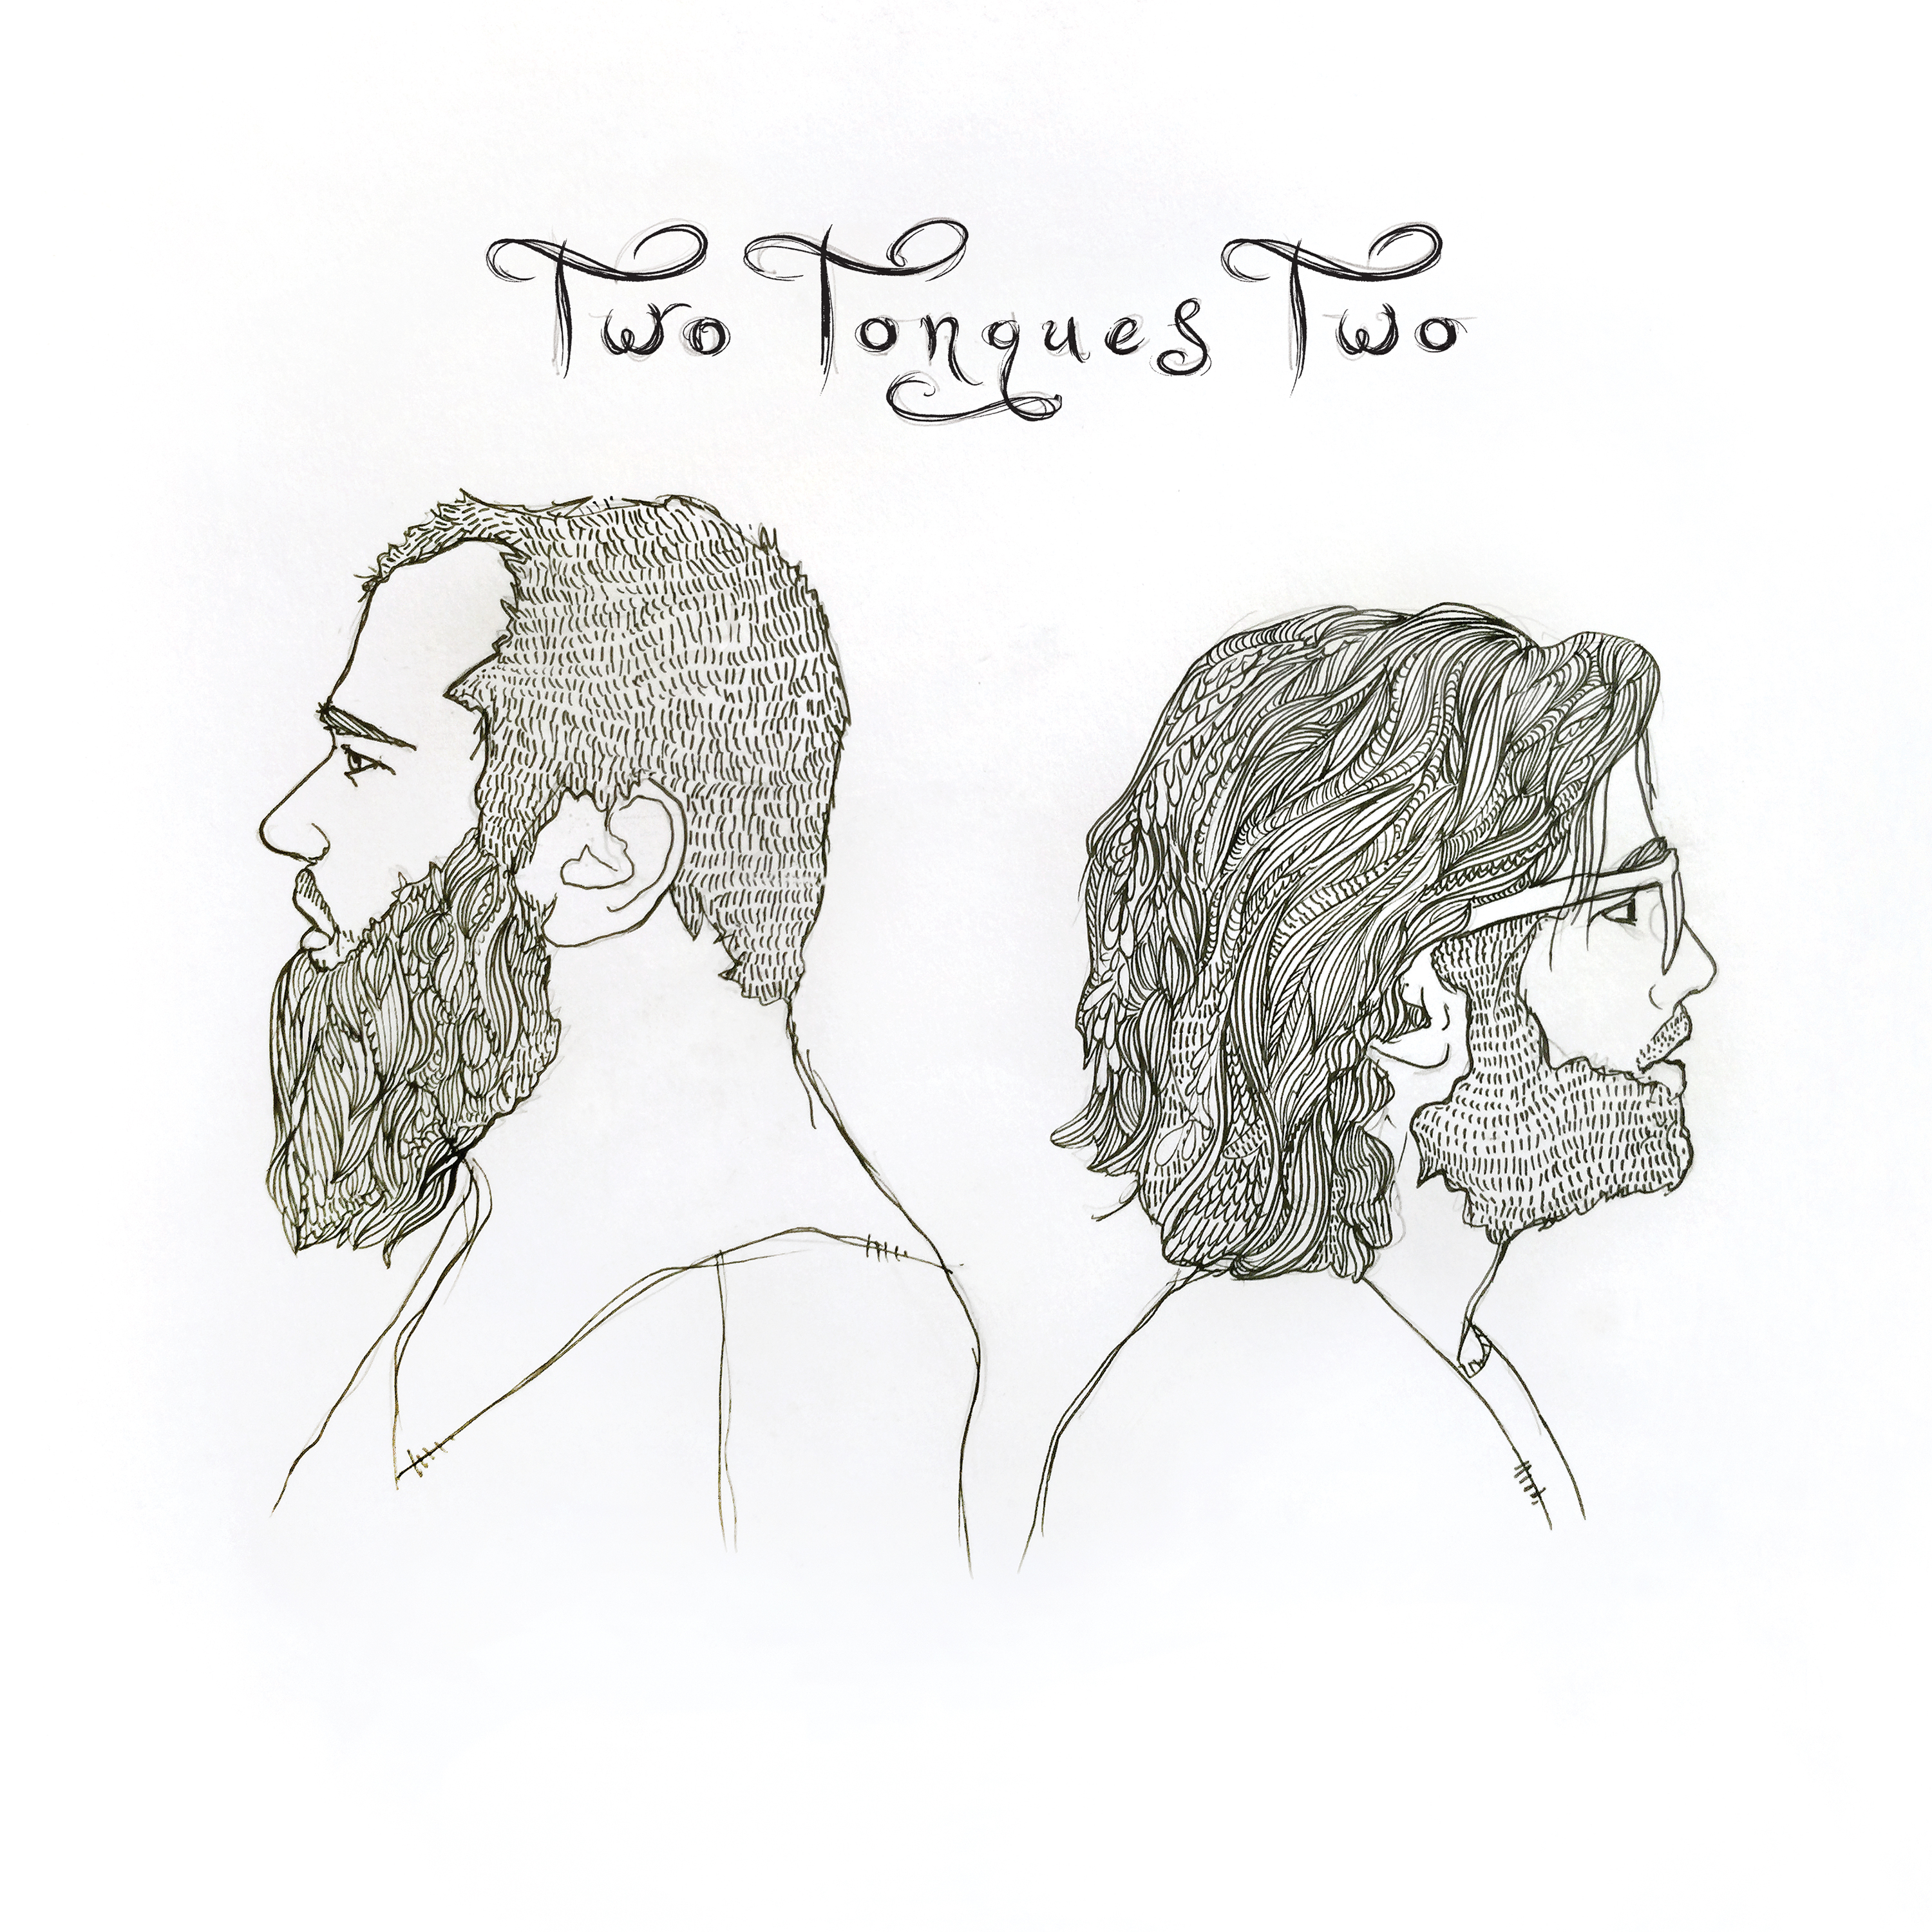 favorite albums of 2016, Two Tongues Two by Two Tongues